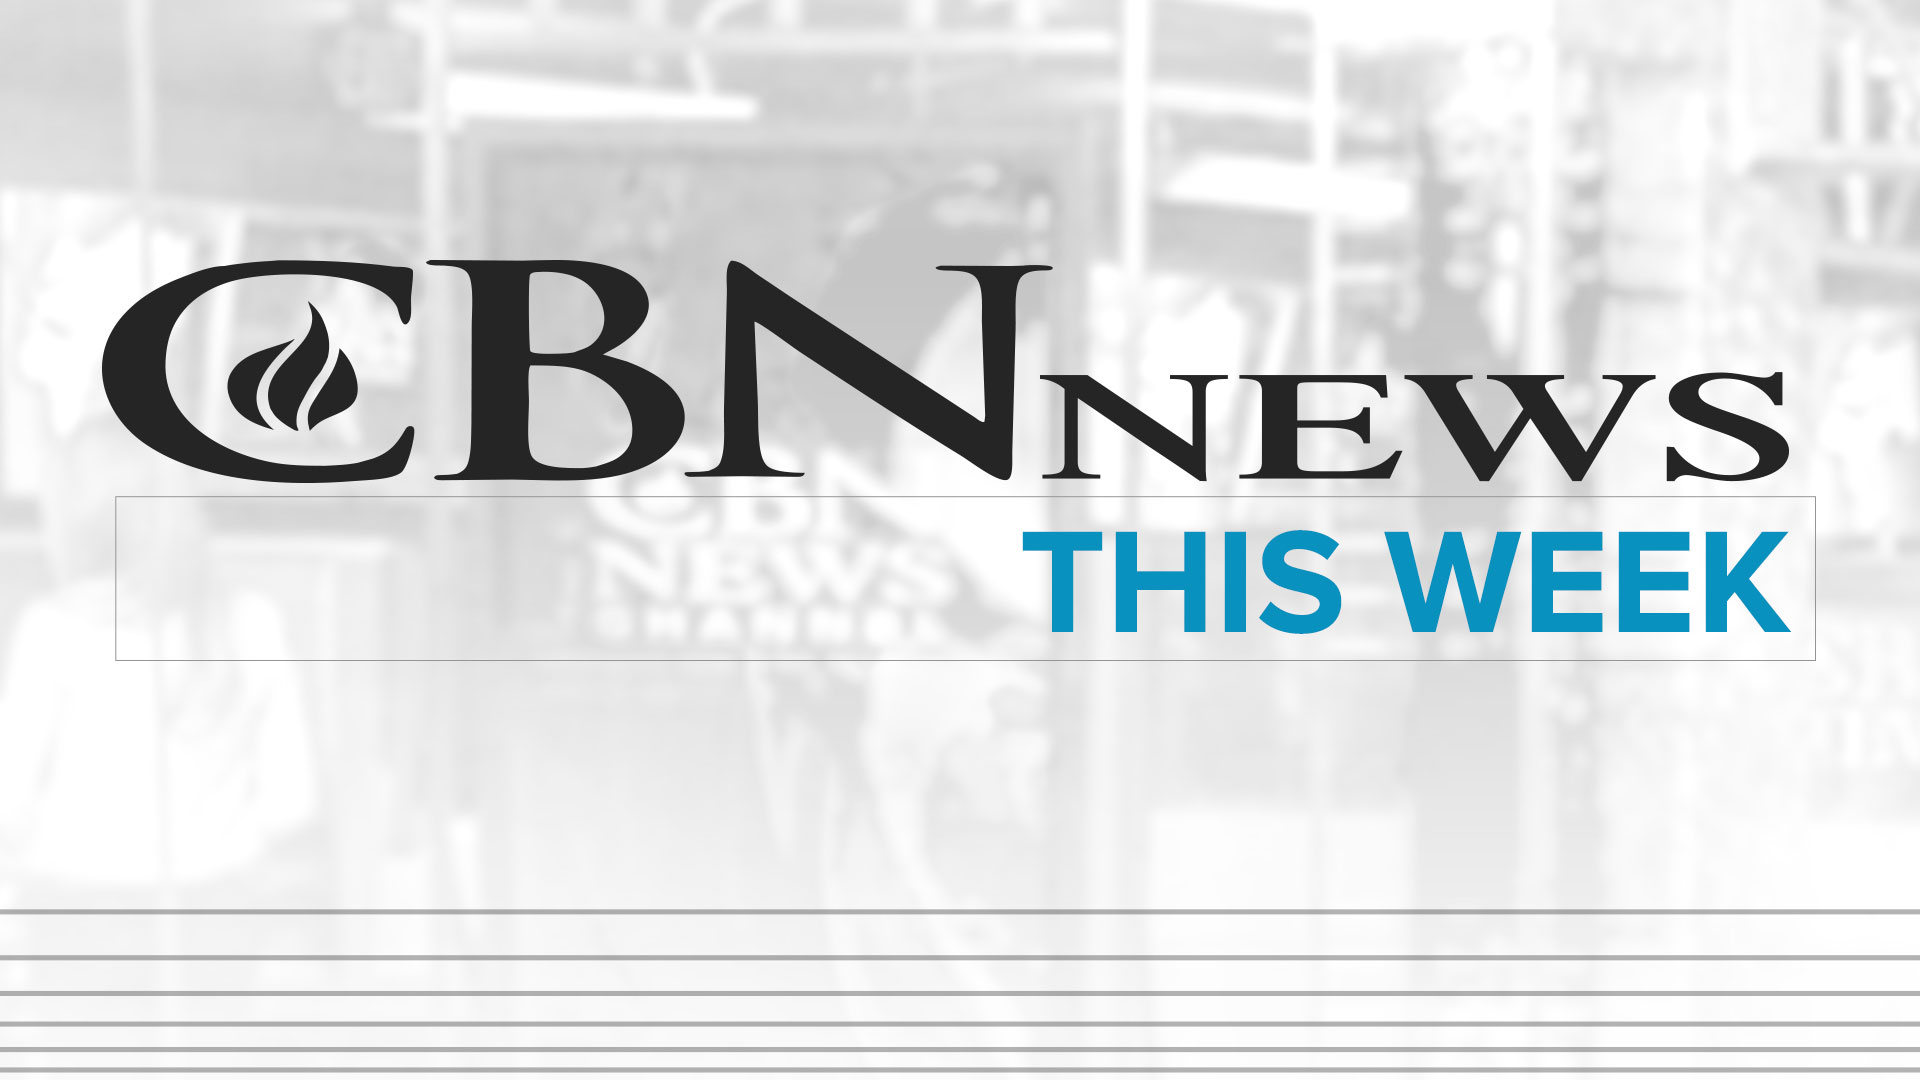 CBN News This Week